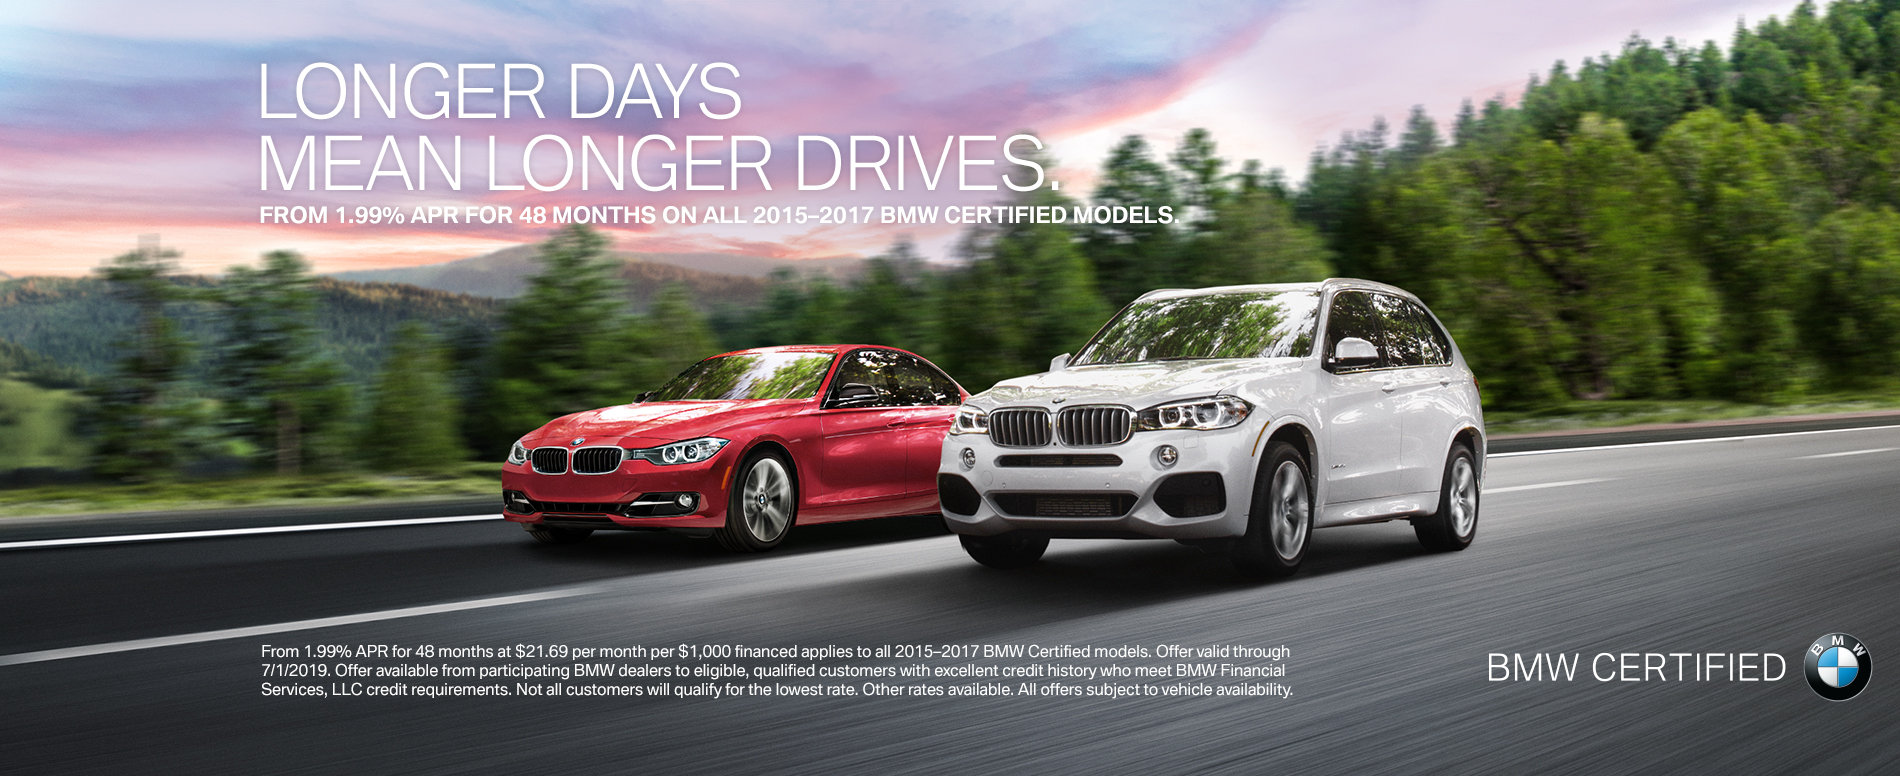 FROM 1.99% APR FOR 48 MONTHS ON ALL 2015 - 2017 BMW CERTIFIED MO